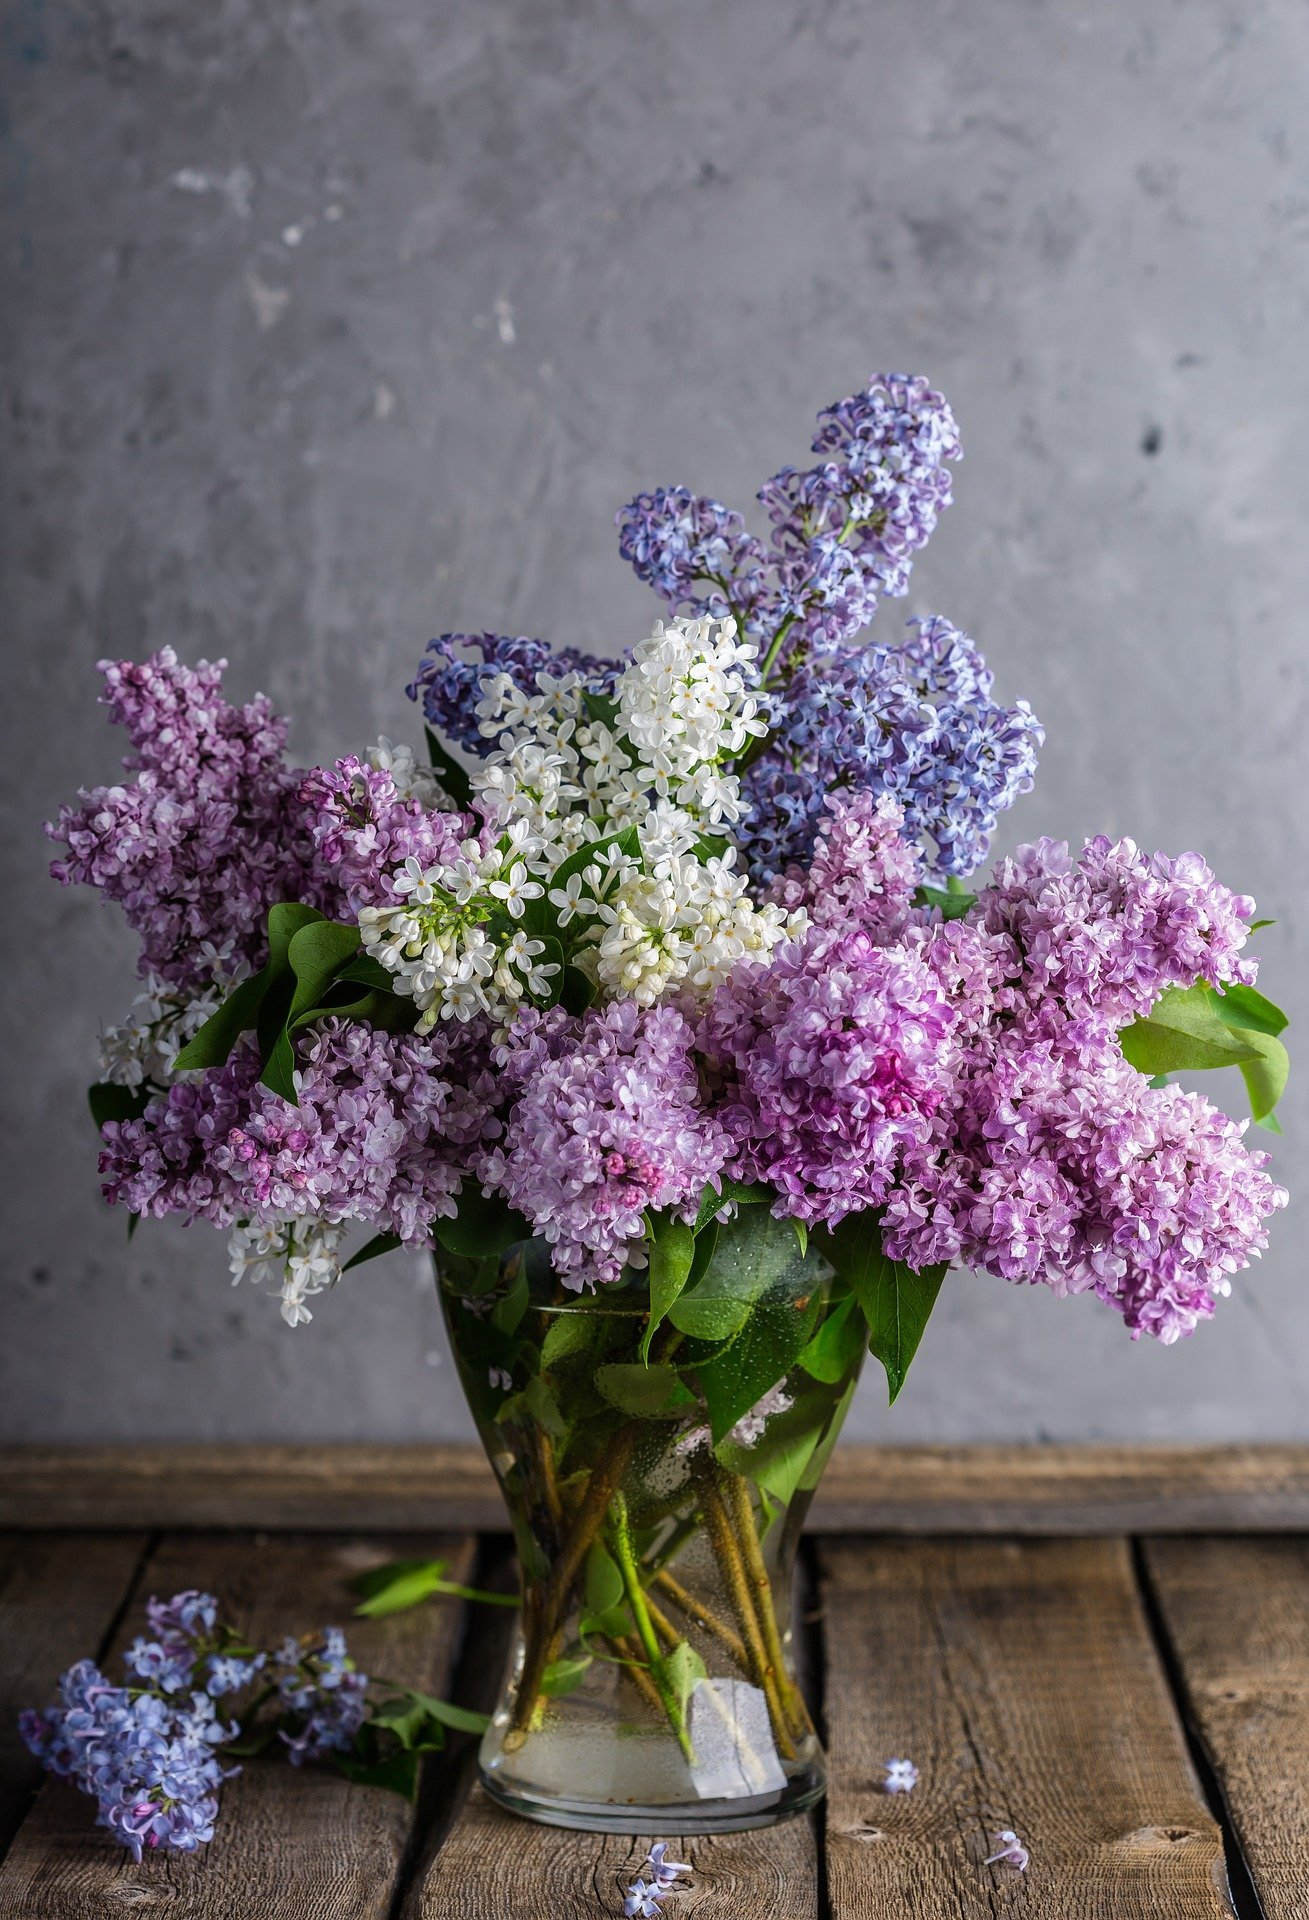 Lilac stalks in a clear vase of water with different colored blooms | Photo: Pixabay/Дарья Яковлева